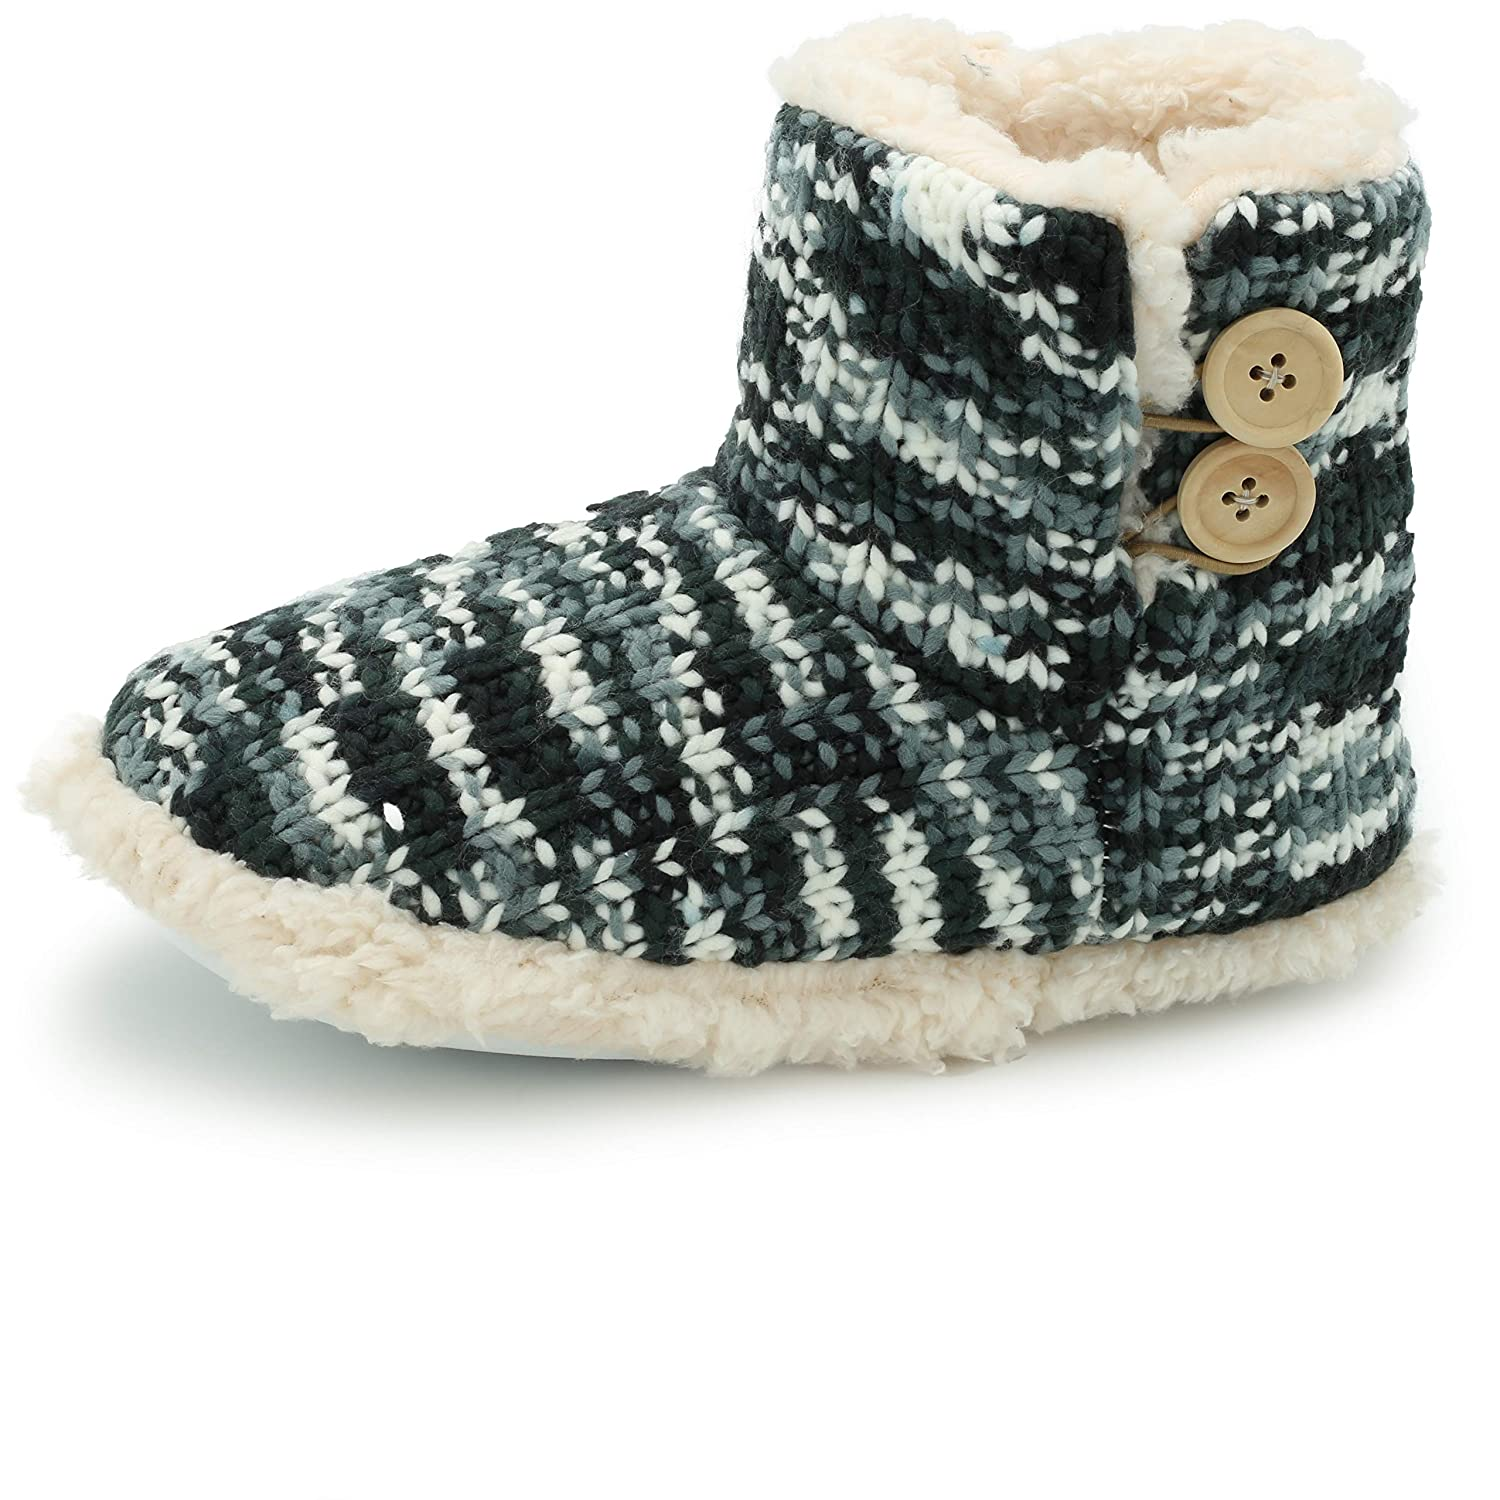 fd97d02dee3b1b Indoor Outdoor Slipper Boots for Women Warm Cosy Super Soft Scotty Dog  Velvet Knitted Womens Booties Gift  Amazon.co.uk  Shoes   Bags